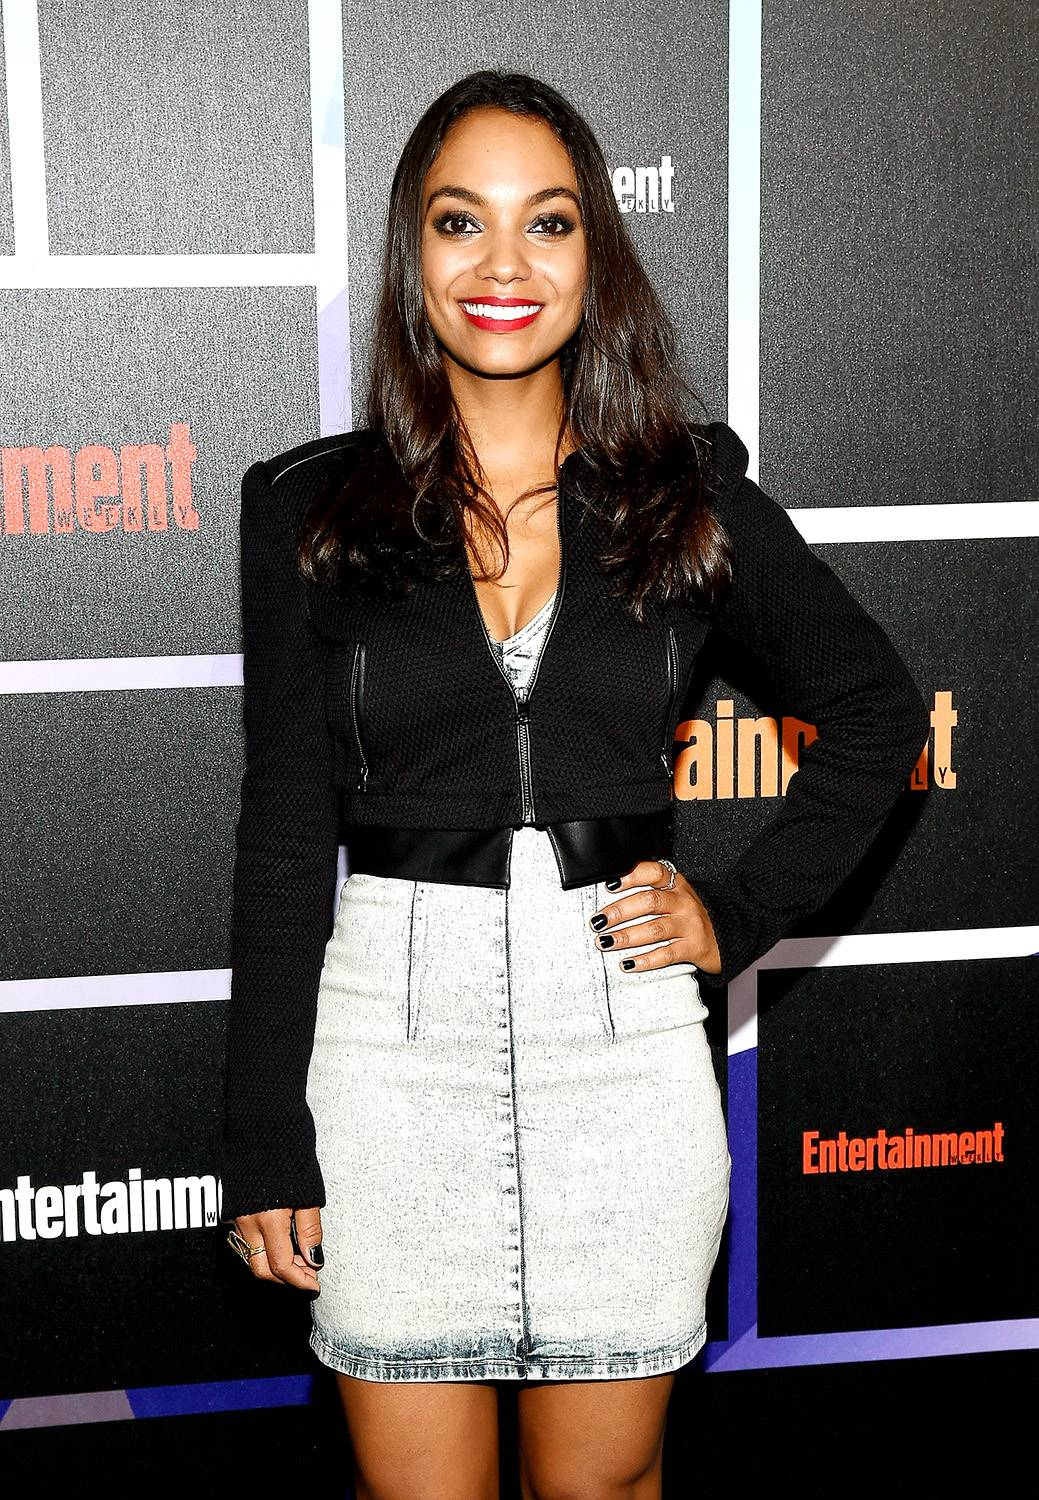 Lyndie Greenwood - September 24, 2014 - Sleepy Hollow star Lyndie Greenwood stopped by to talk about the latest season of the TV series and her real-life scare. Watch a clip now!  (Photo: Ethan Miller/Getty Images)